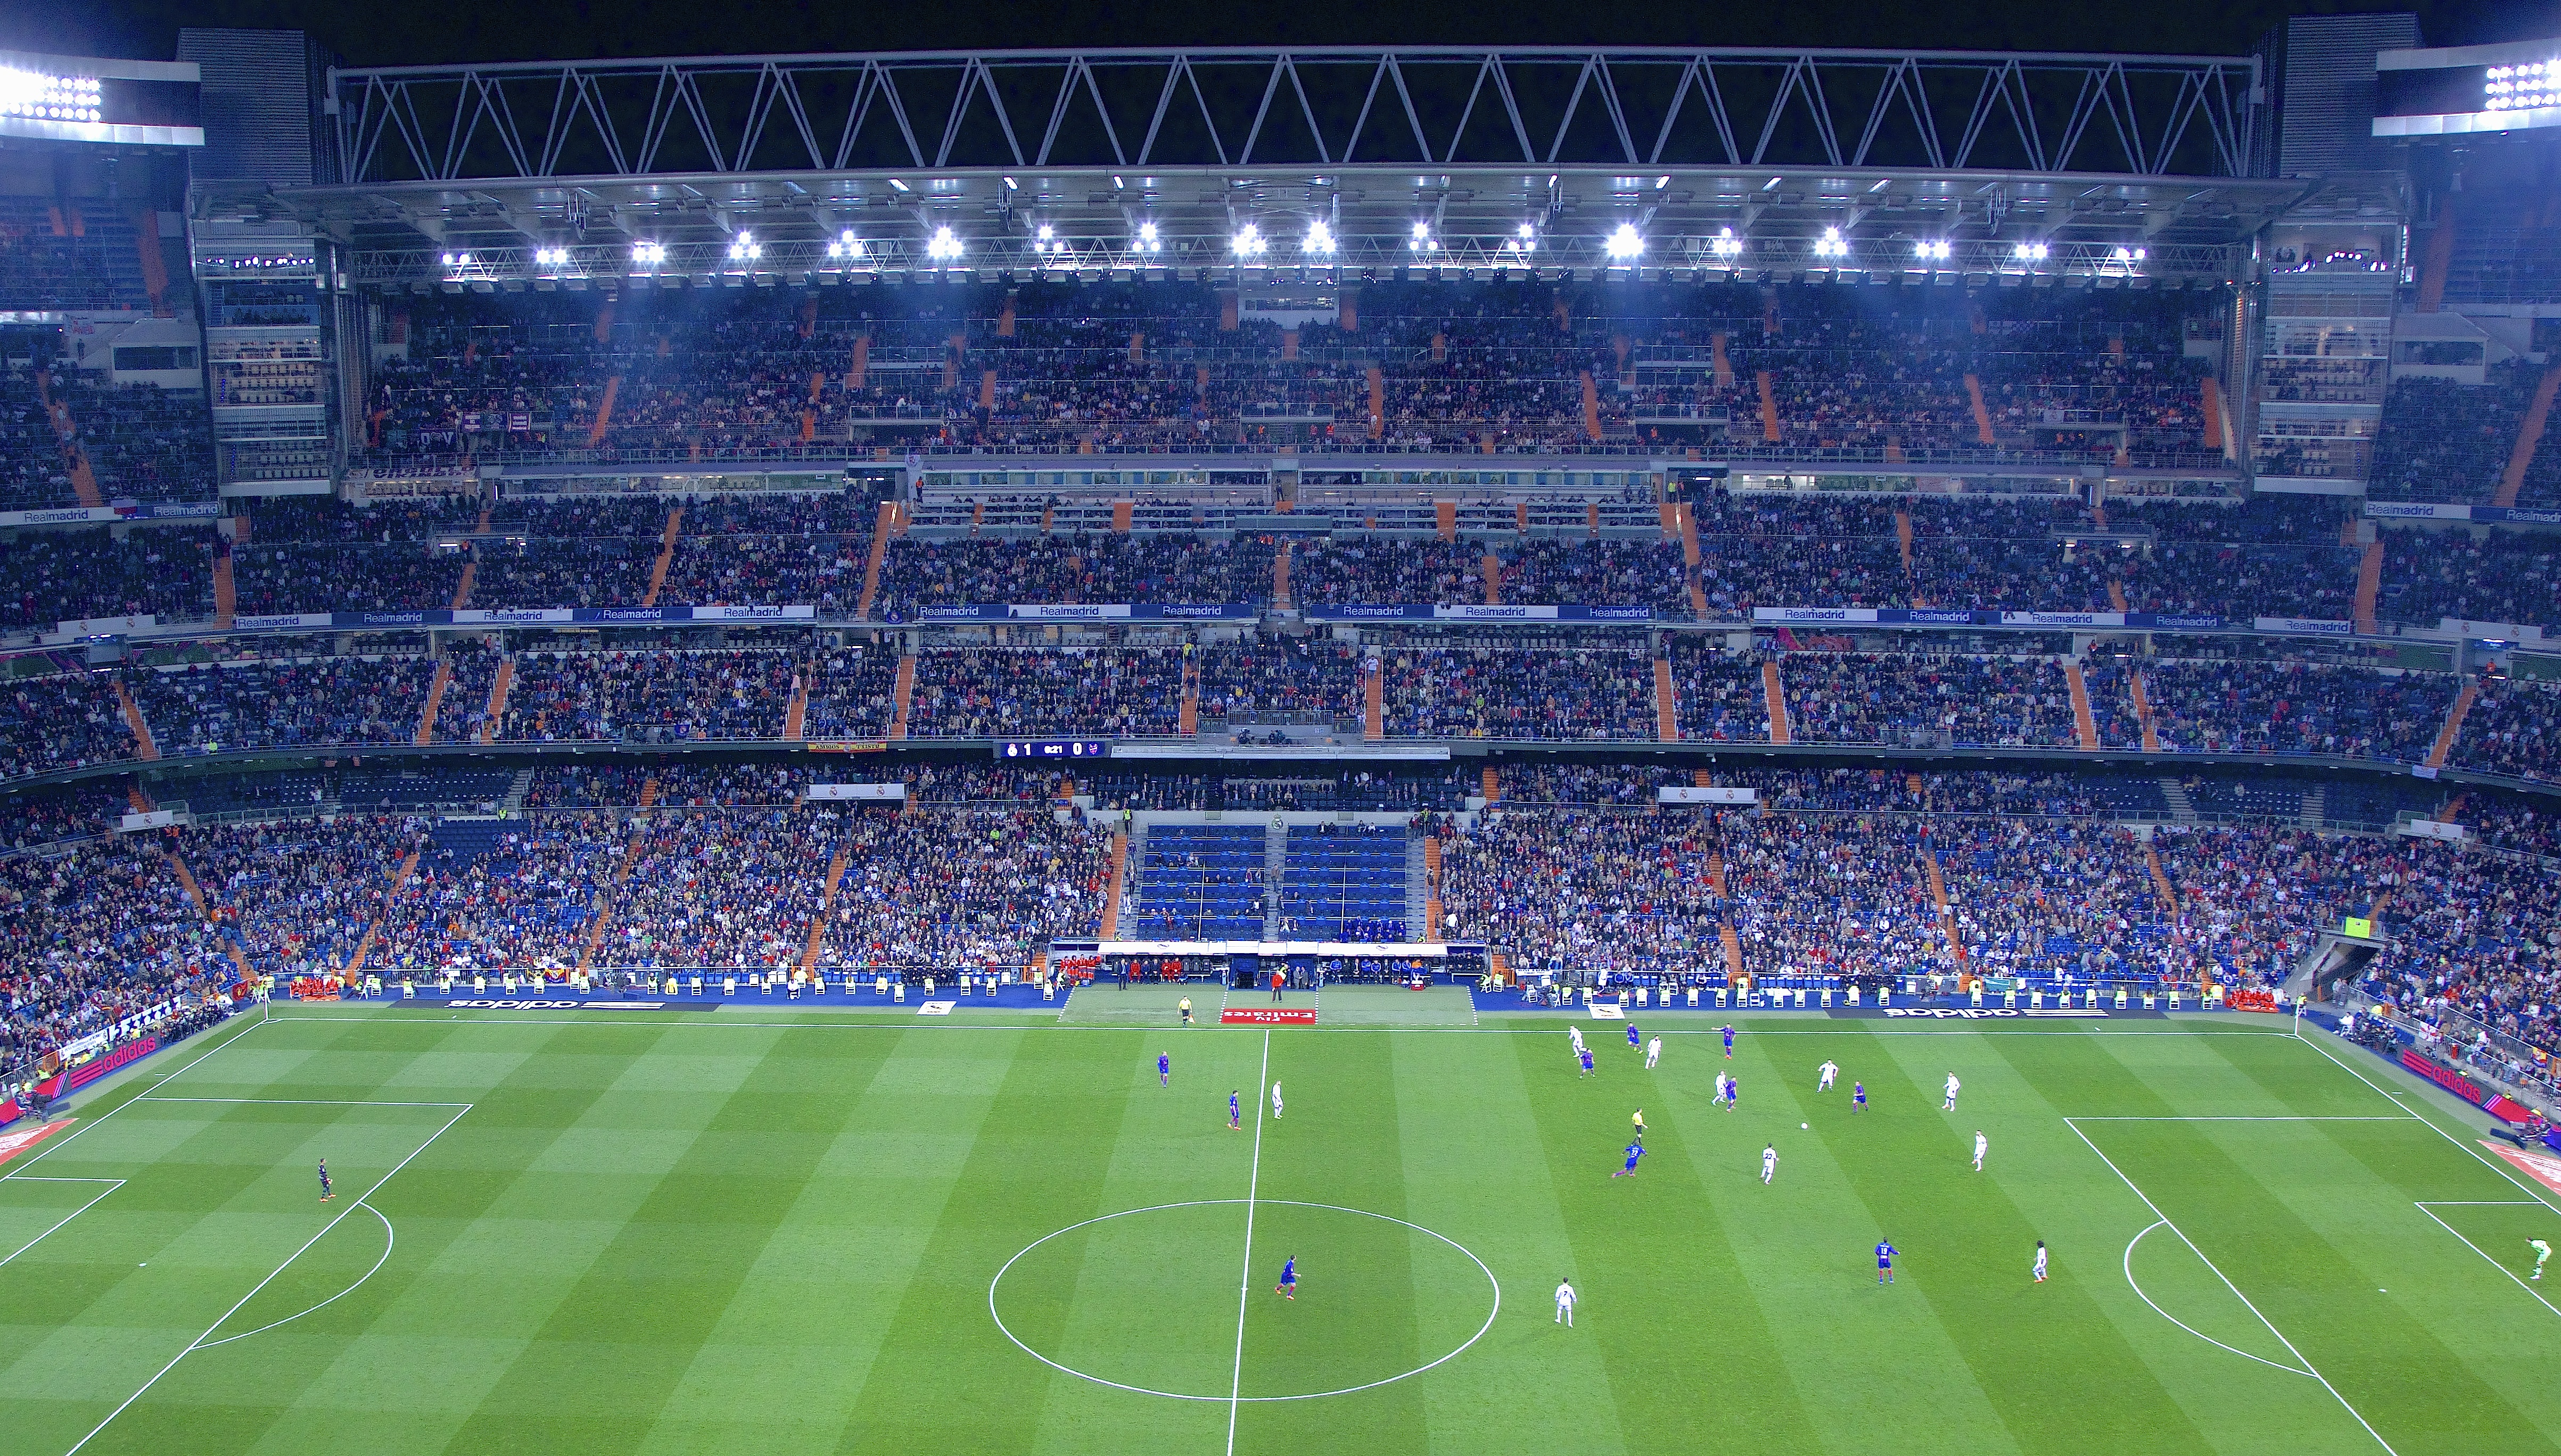 Being on home soil in the Estadio Santiago Bernabéu didn't help Real Madrid as they lost to Sheriff 2-1.